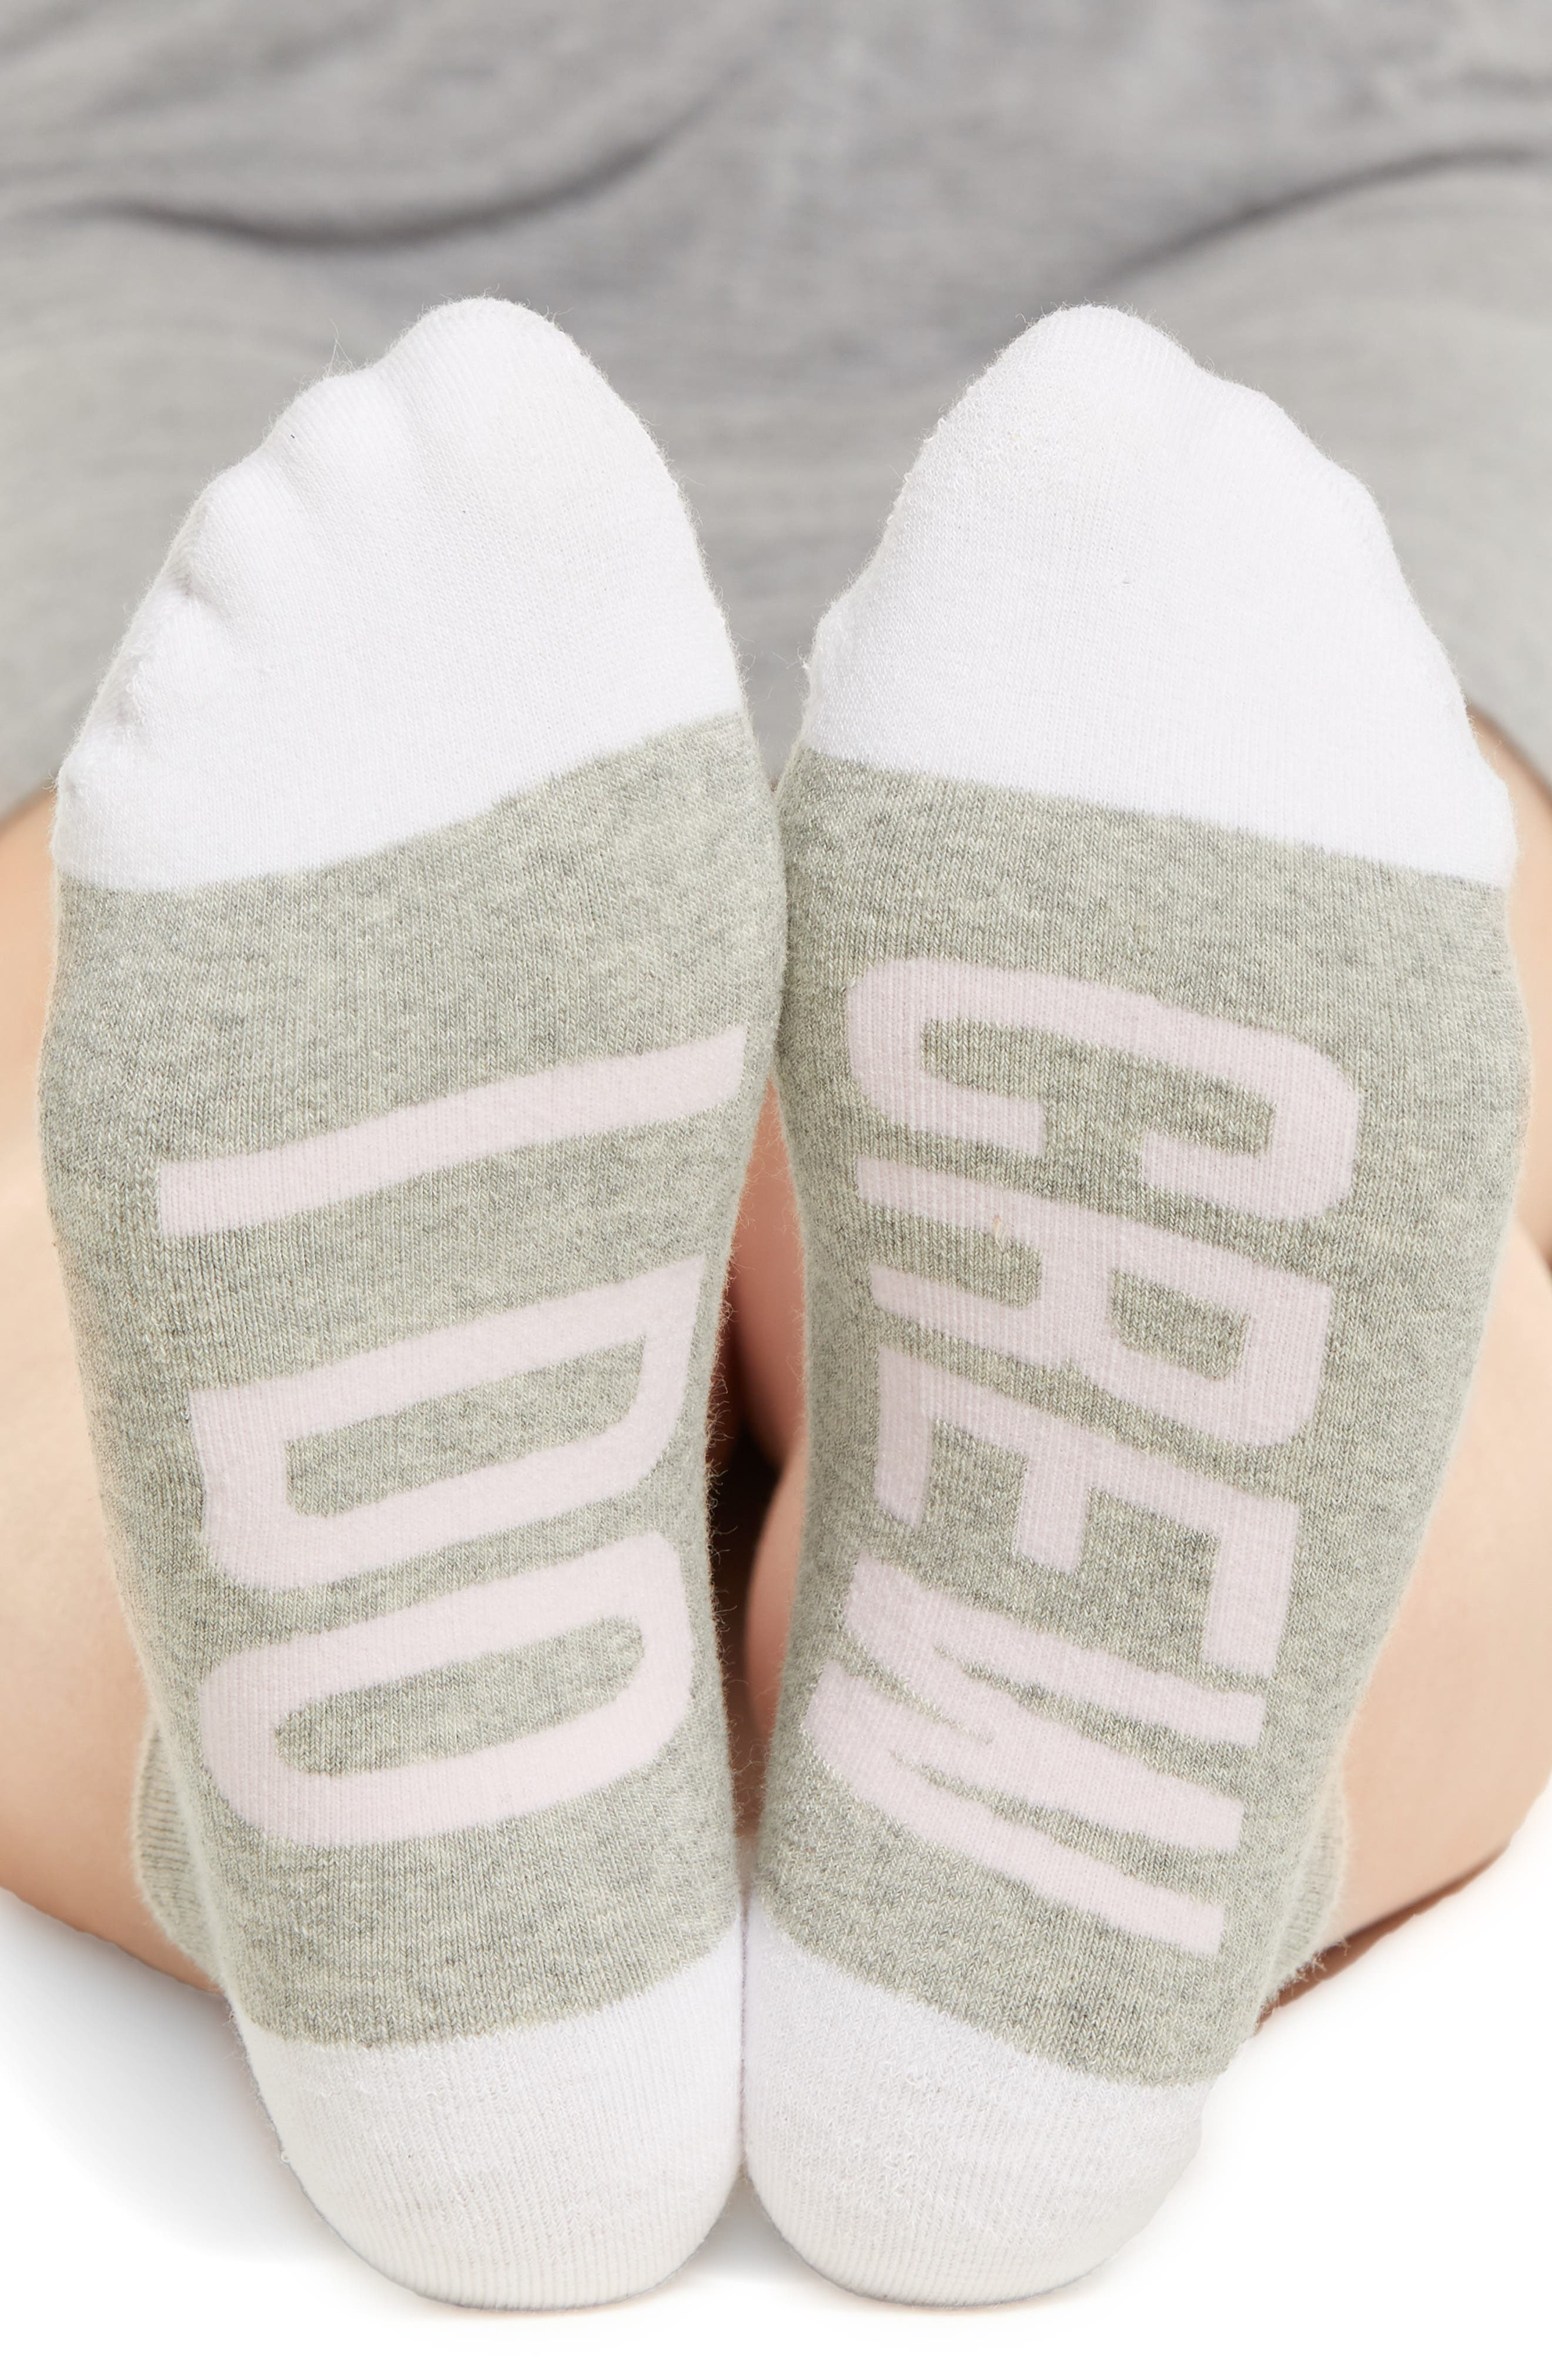 I Do Crew Low-Cut Socks,                             Alternate thumbnail 2, color,                             060